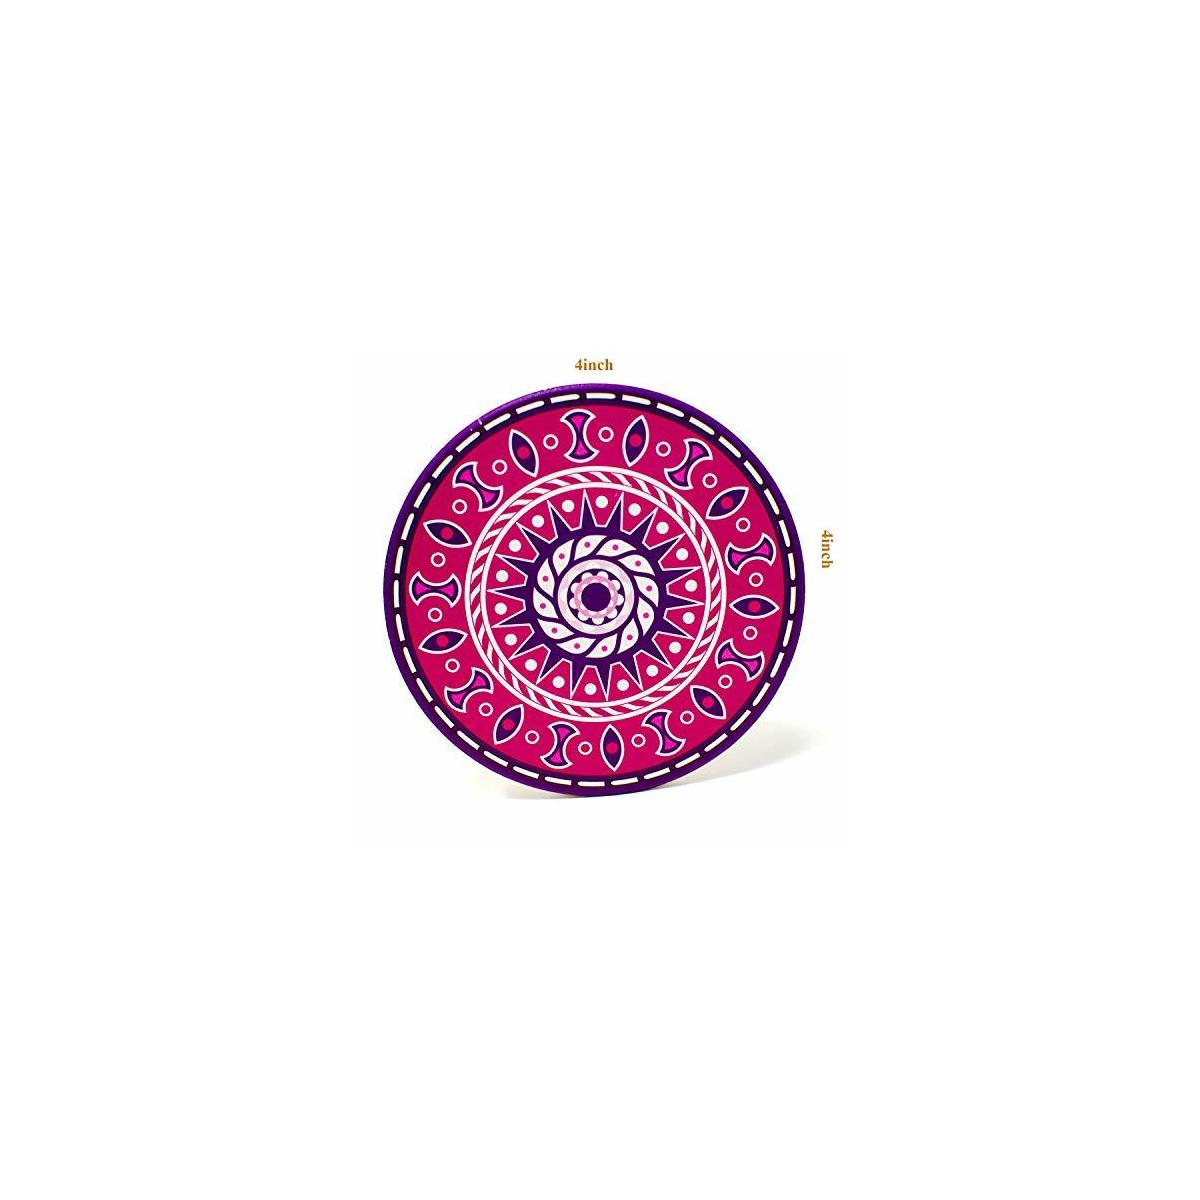 Absorbing Stone Mandala Coasters for Drinks, Set of 6 Multicolors Absorbent Stone Coasters with Holder, 4 Inches Ceramic Coasters for Drinks with Cork Base, Unique Gift Ideas for Friends